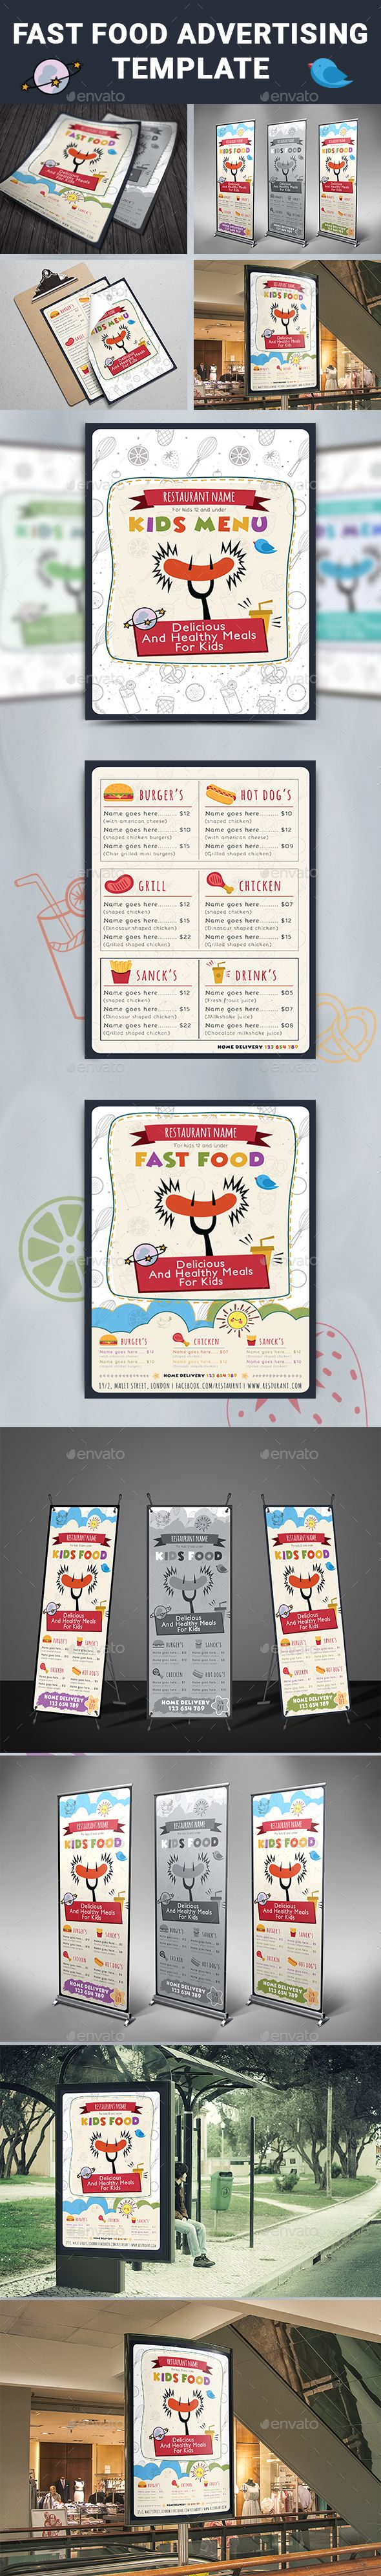 Fast Food Advertising Template Vector EPS, InDesign INDD, AI Illustrator